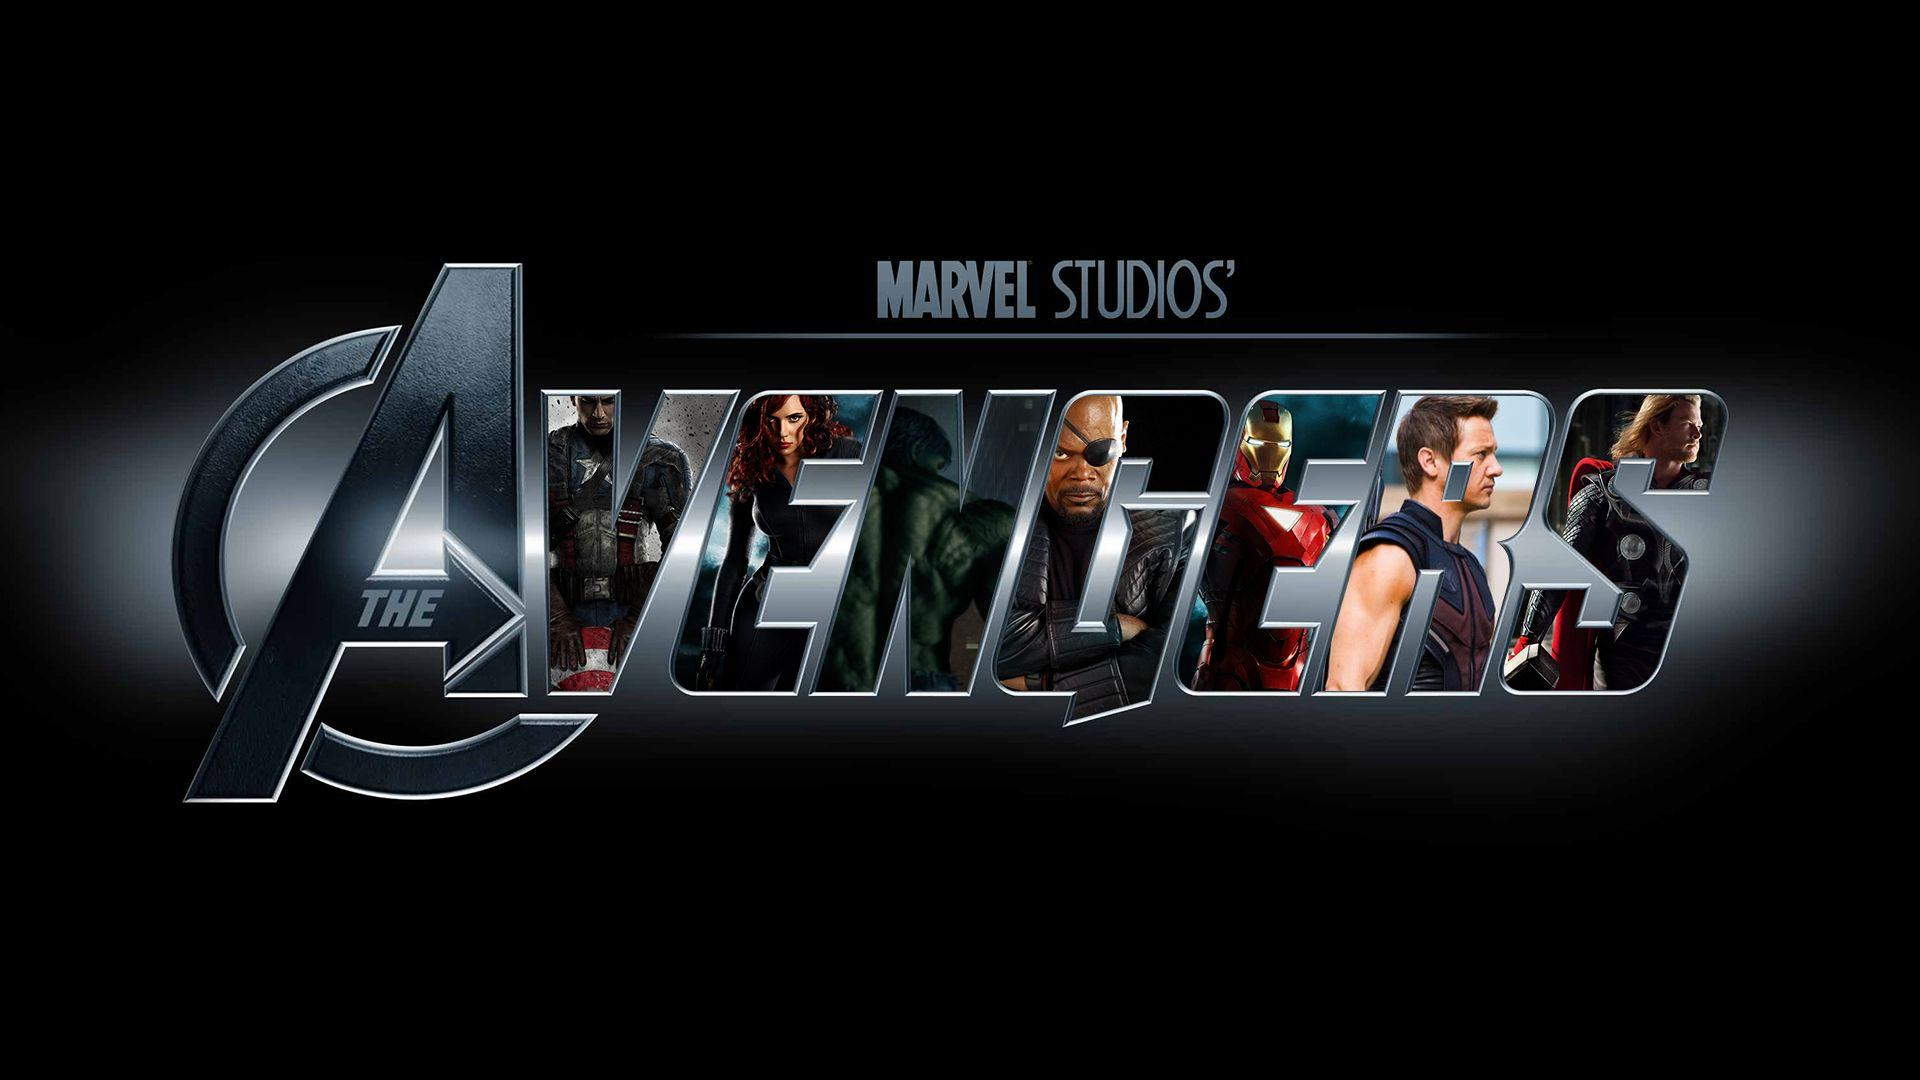 The Avengers wallpapers 22